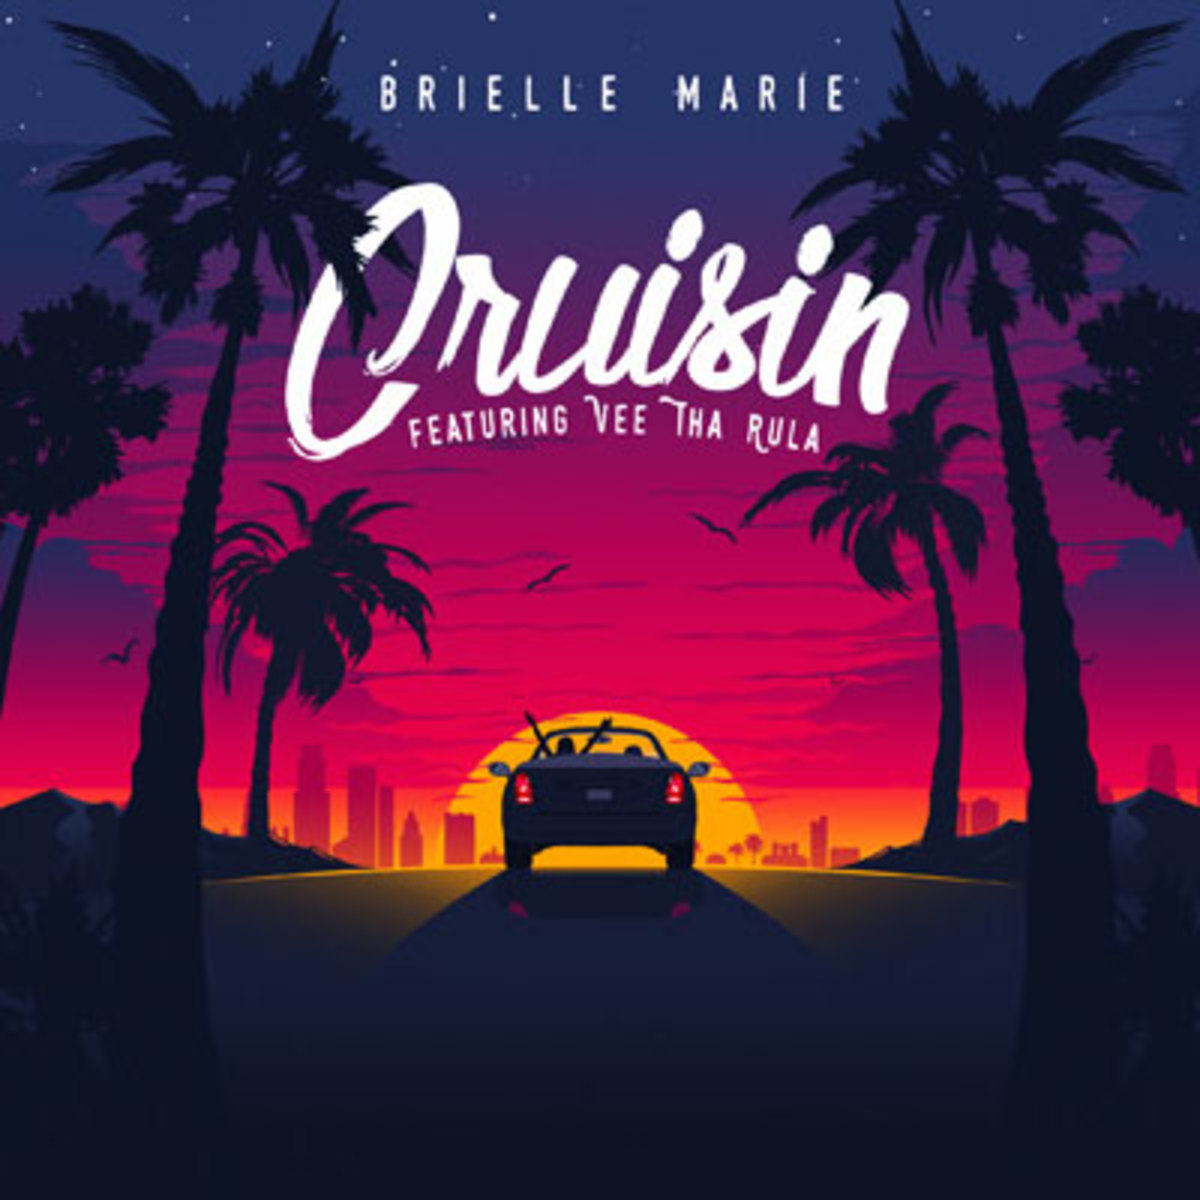 brielle-marie-crusin.jpg